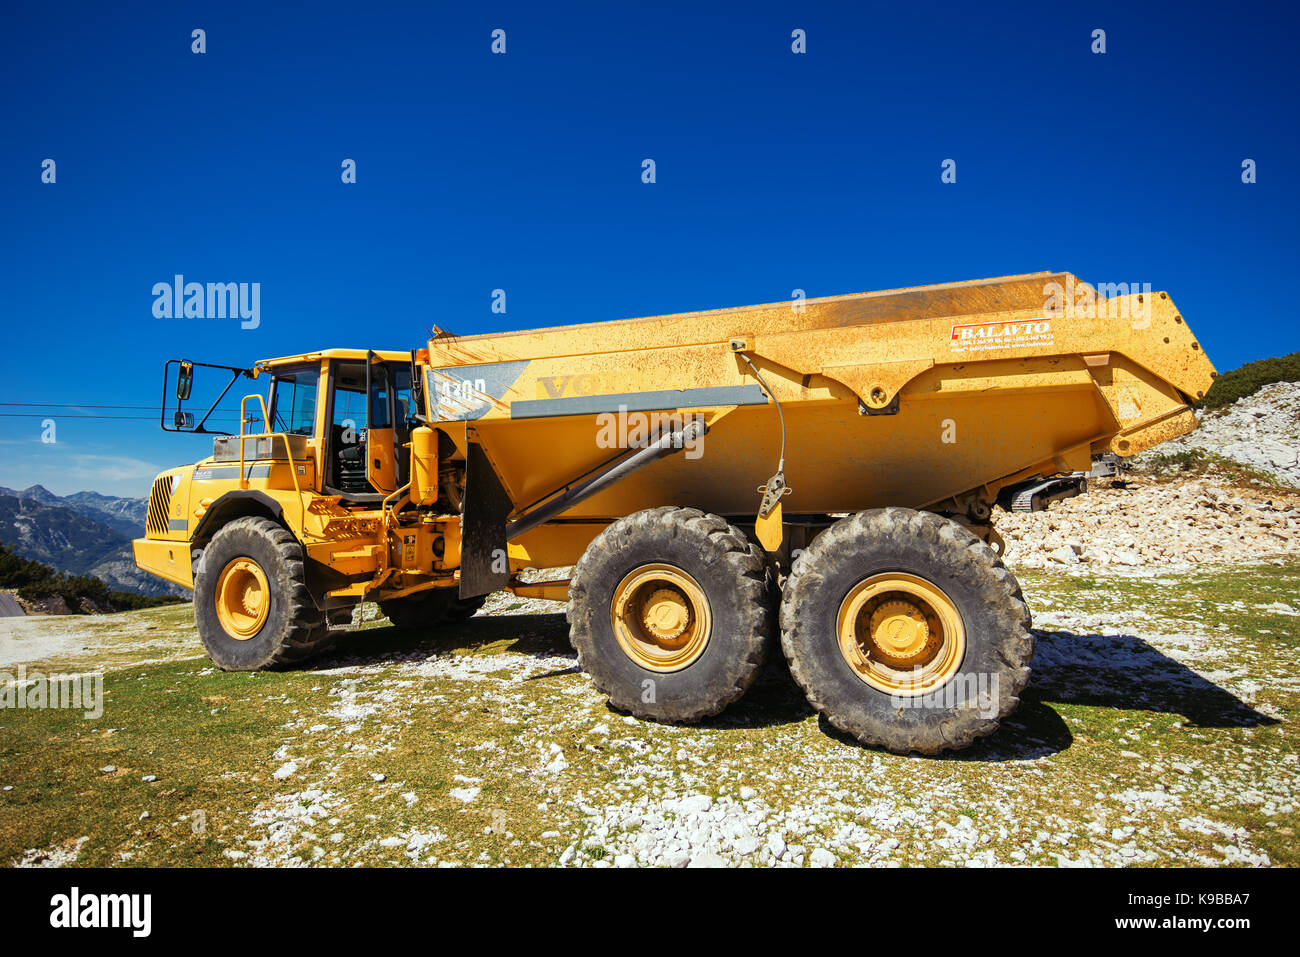 VOGEL MOUNTAIN, SLOVENIA - AUGUST 30, 2017: Construction machinery for crushing stone, large Volvo truck dumper - Stock Image